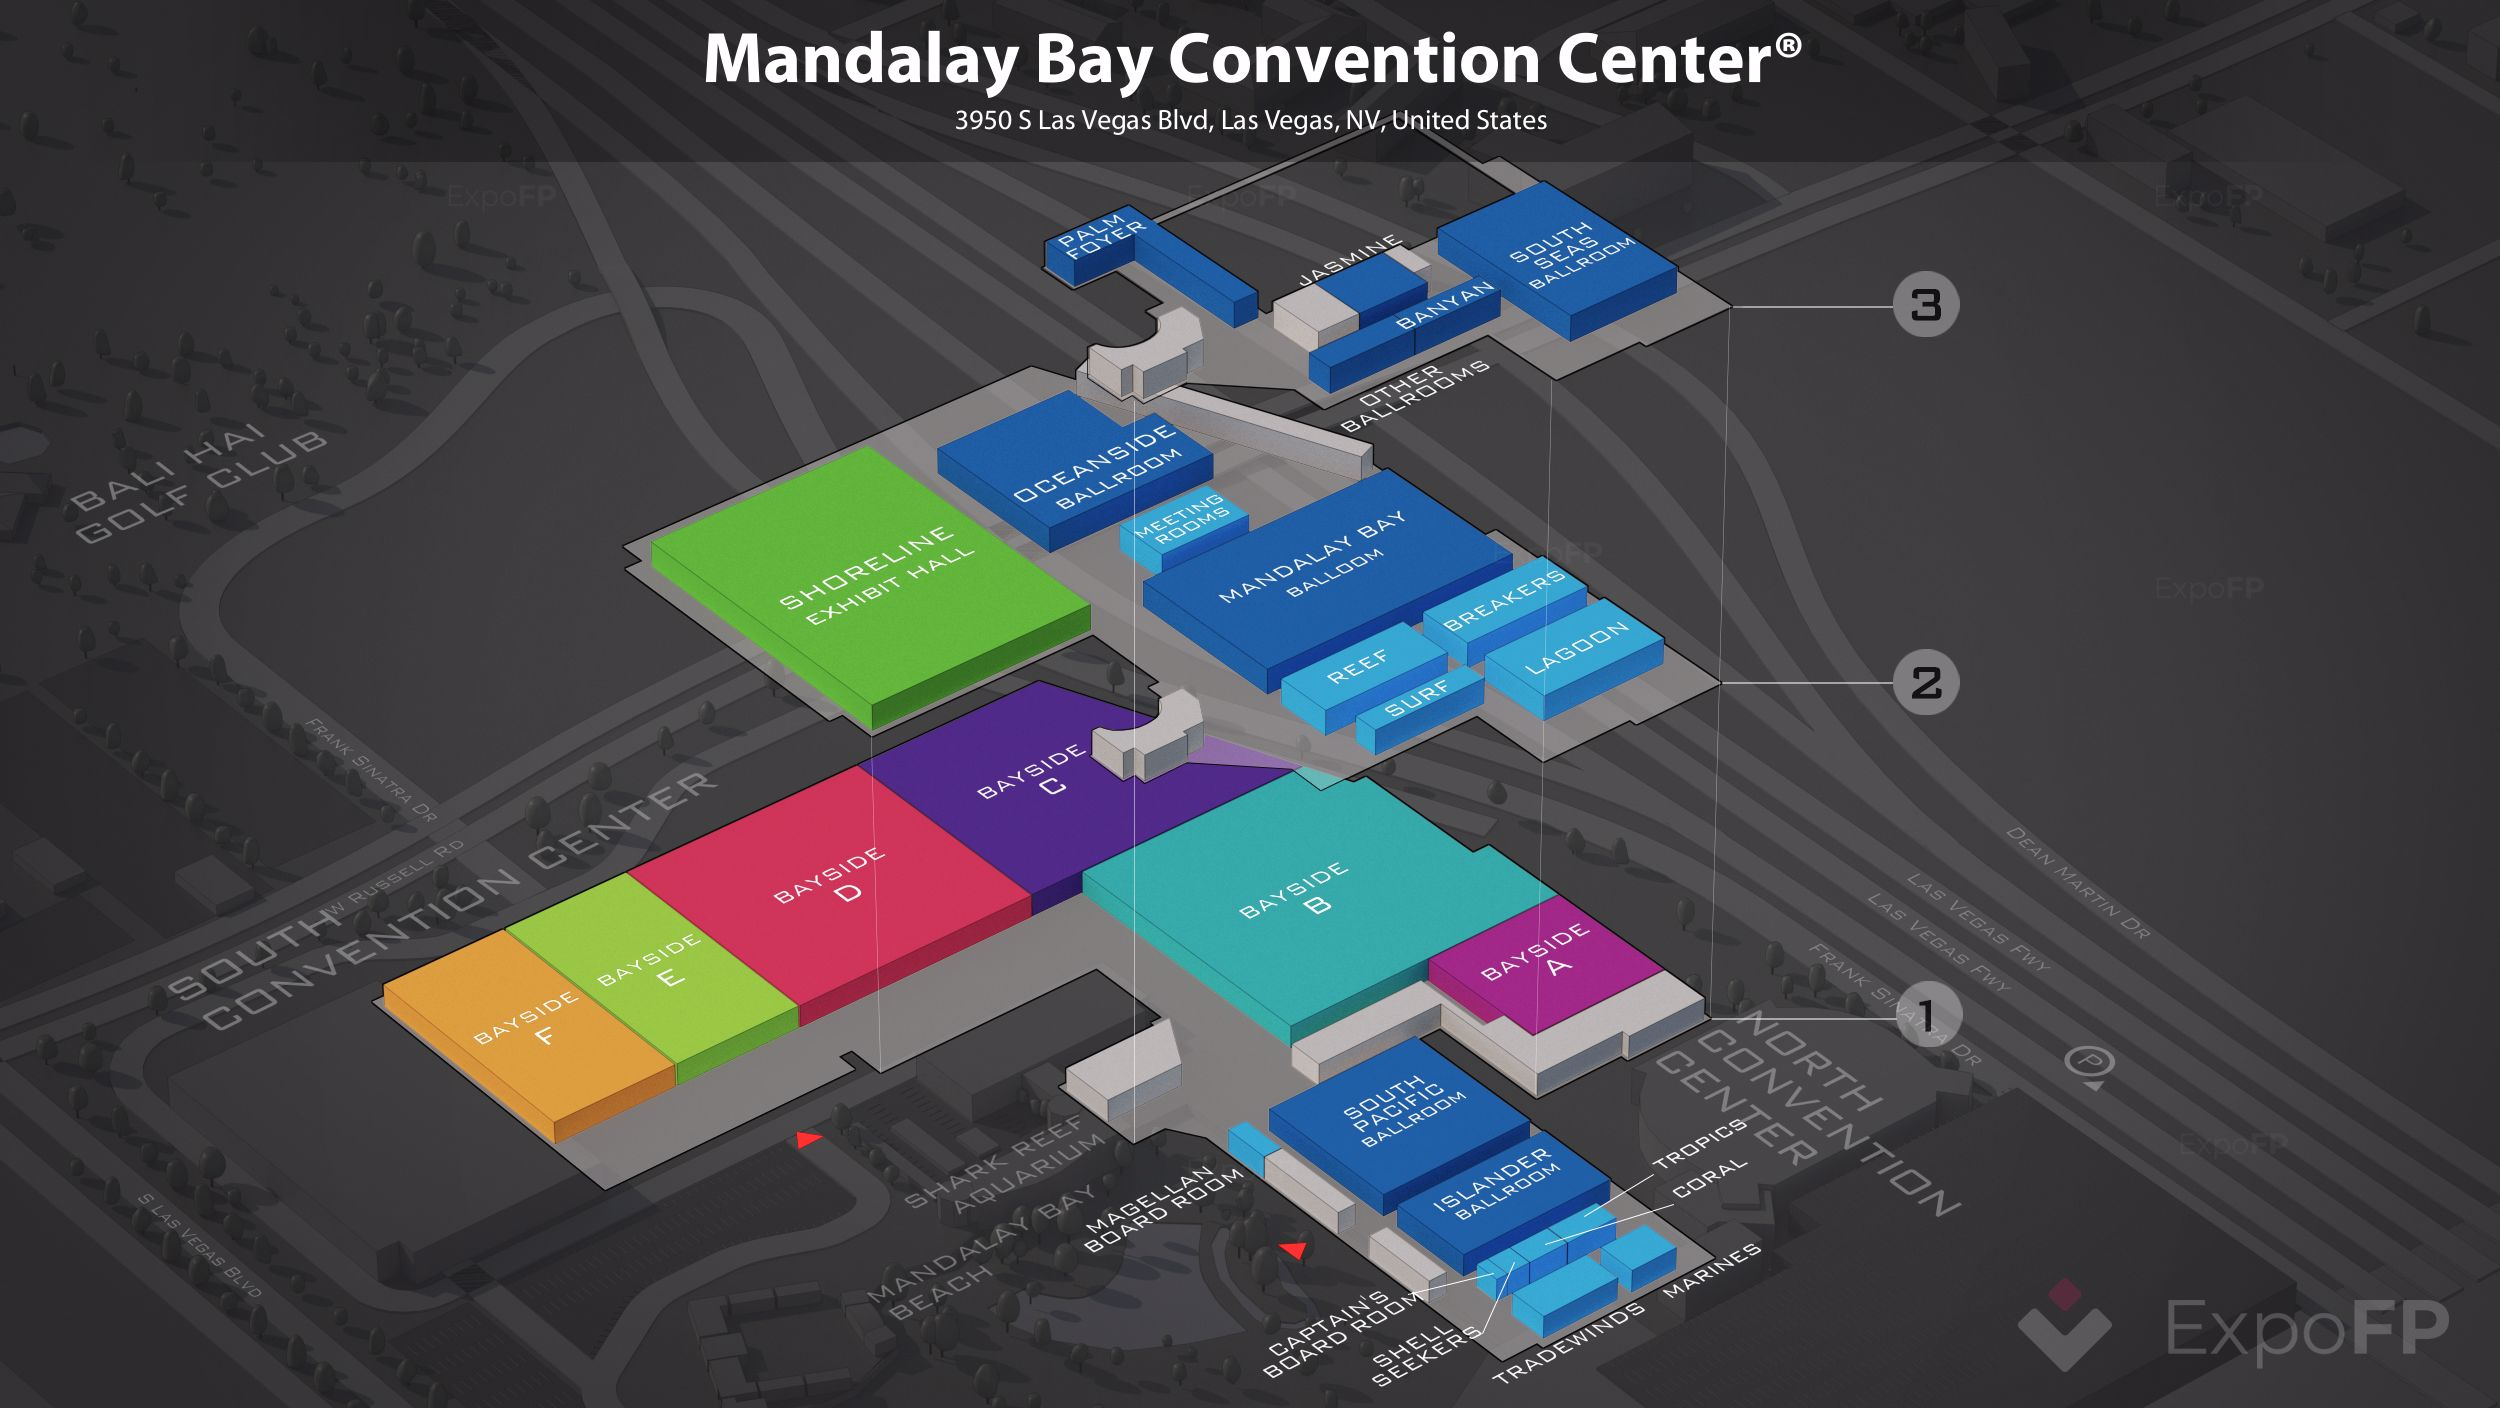 Mandalay Bay Convention Center floor plan